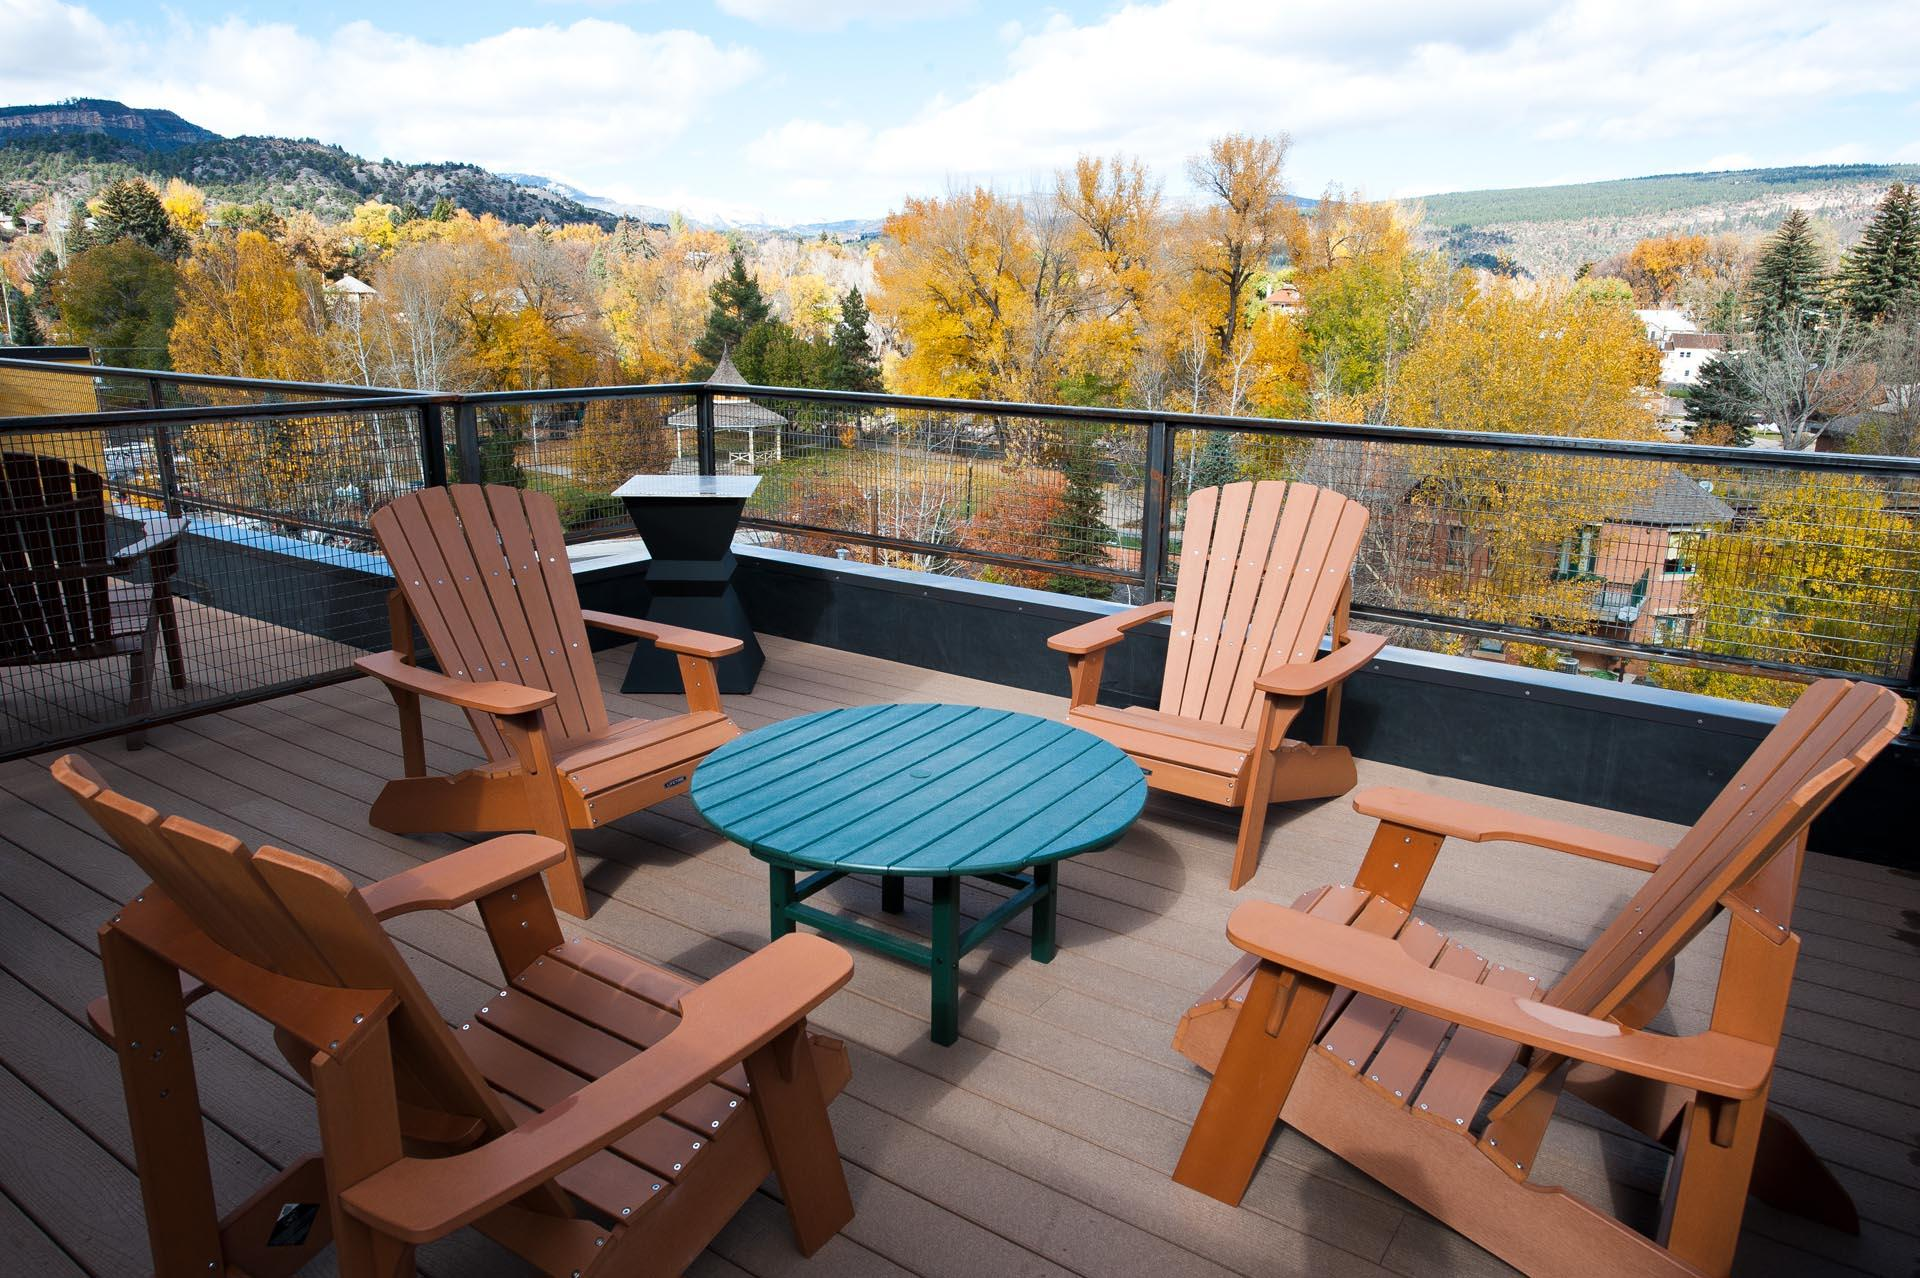 Rooftop patio with outdoor seating area. Gorgeous views of the mountains, train bridge, and Animas River